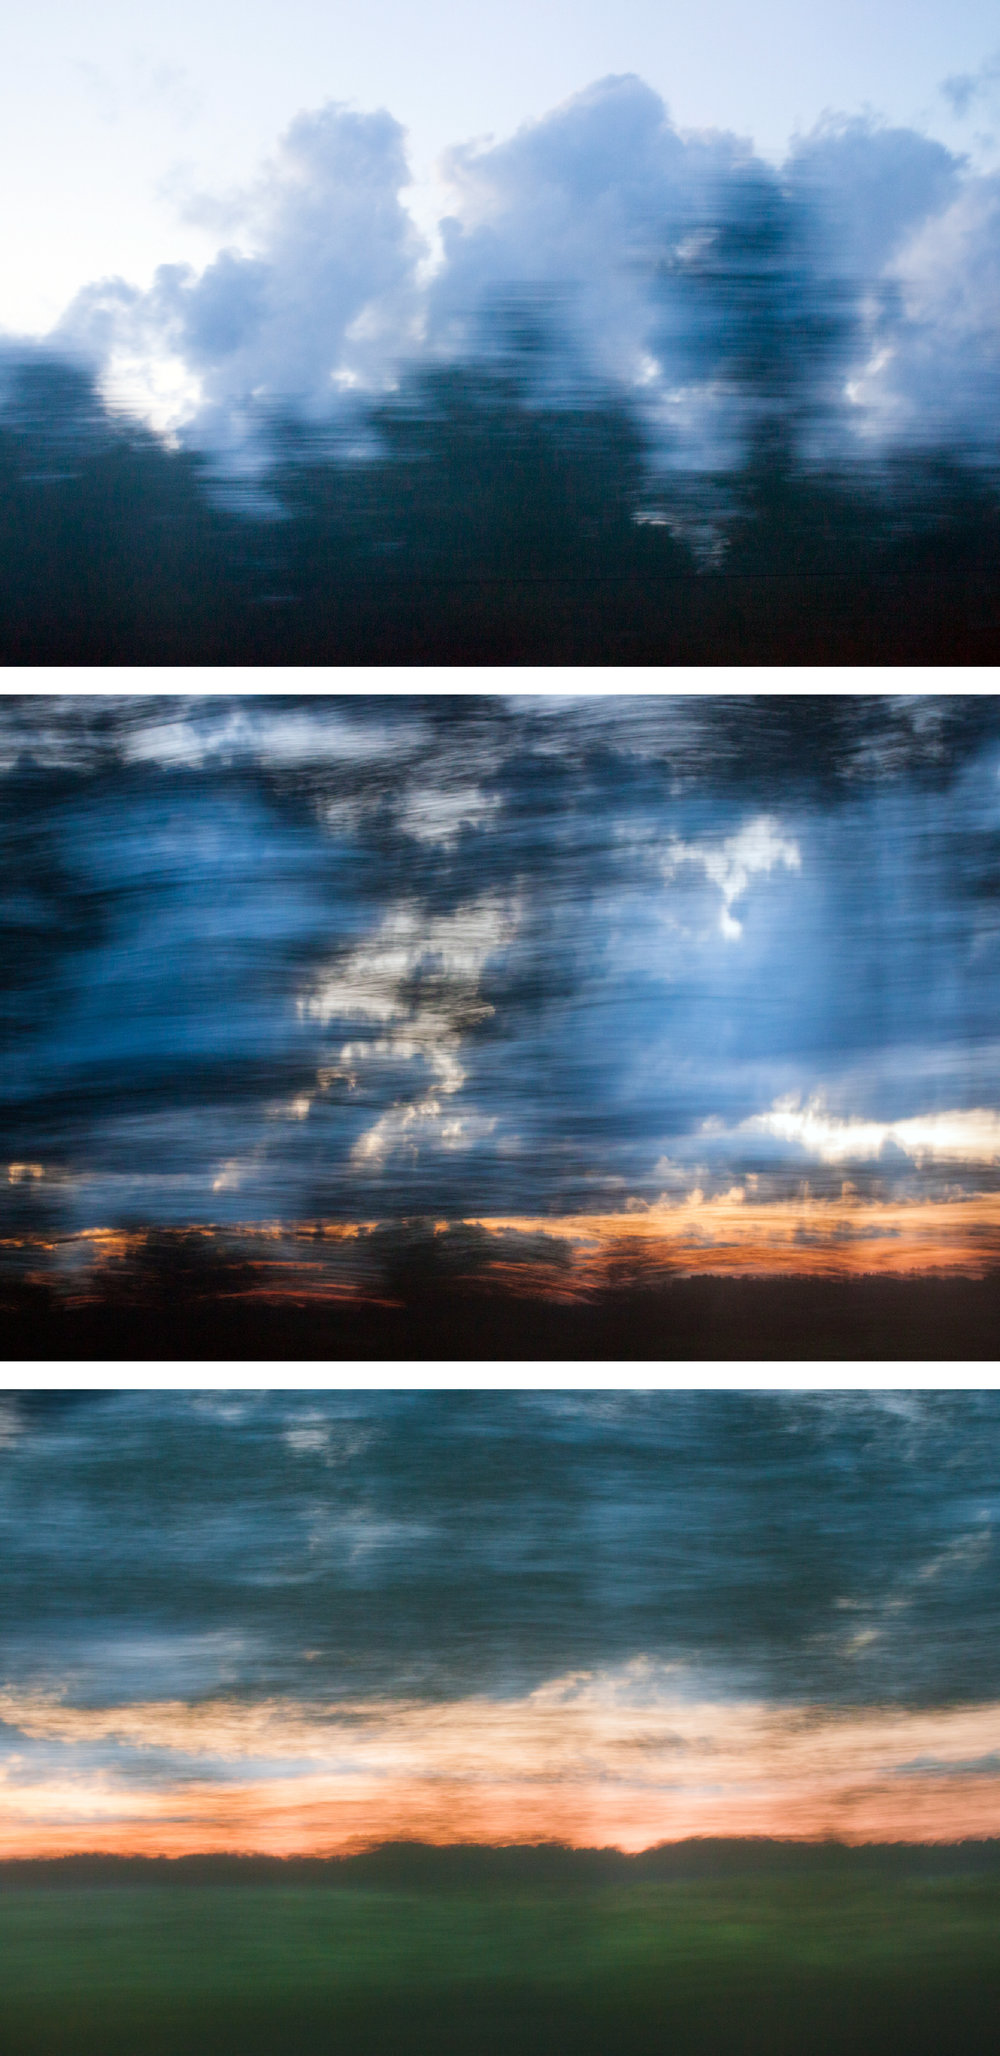 From the Window of the Trans-Siberian Railroad by Yulia Morris (Triptych)